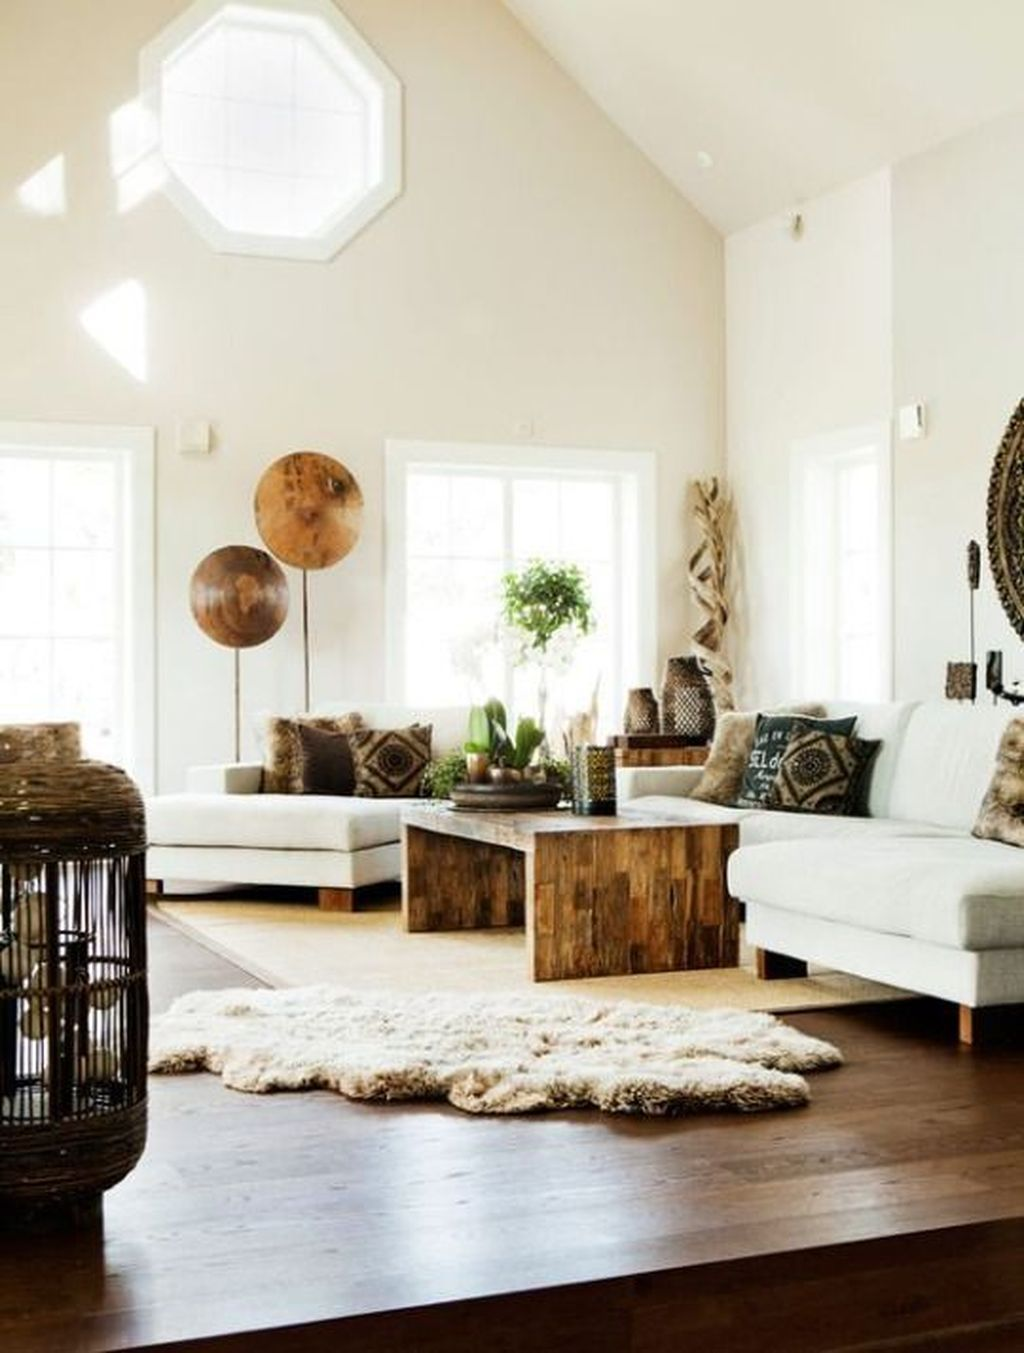 Stylish And Elegant Sheepskin Rug Ideas For Living Room Decoration With Images Asian Home Decor Home Living Room House Interior #sheepskin #rug #living #room